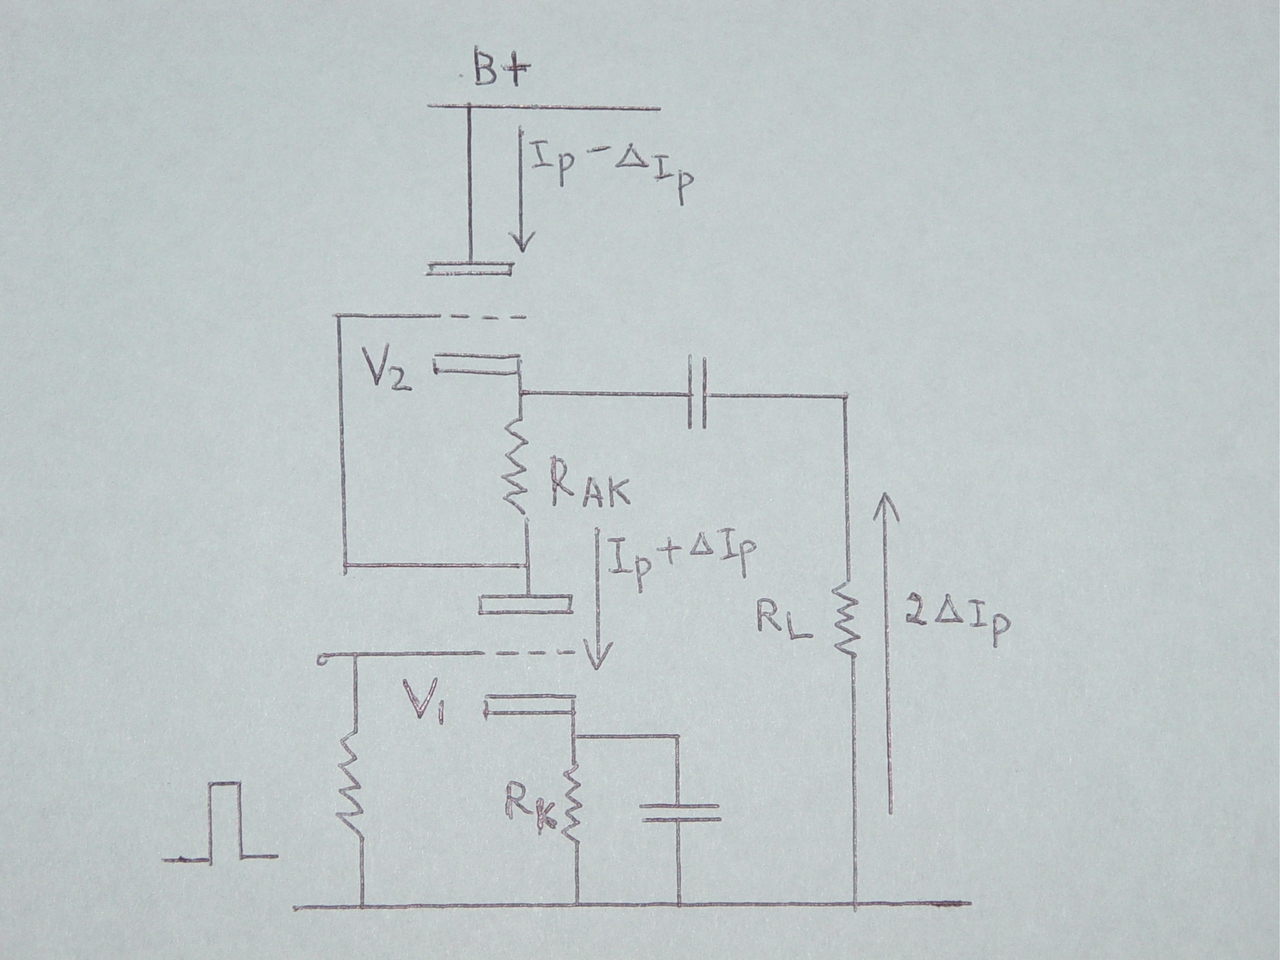 Srpp Amplifier Theory Pictures